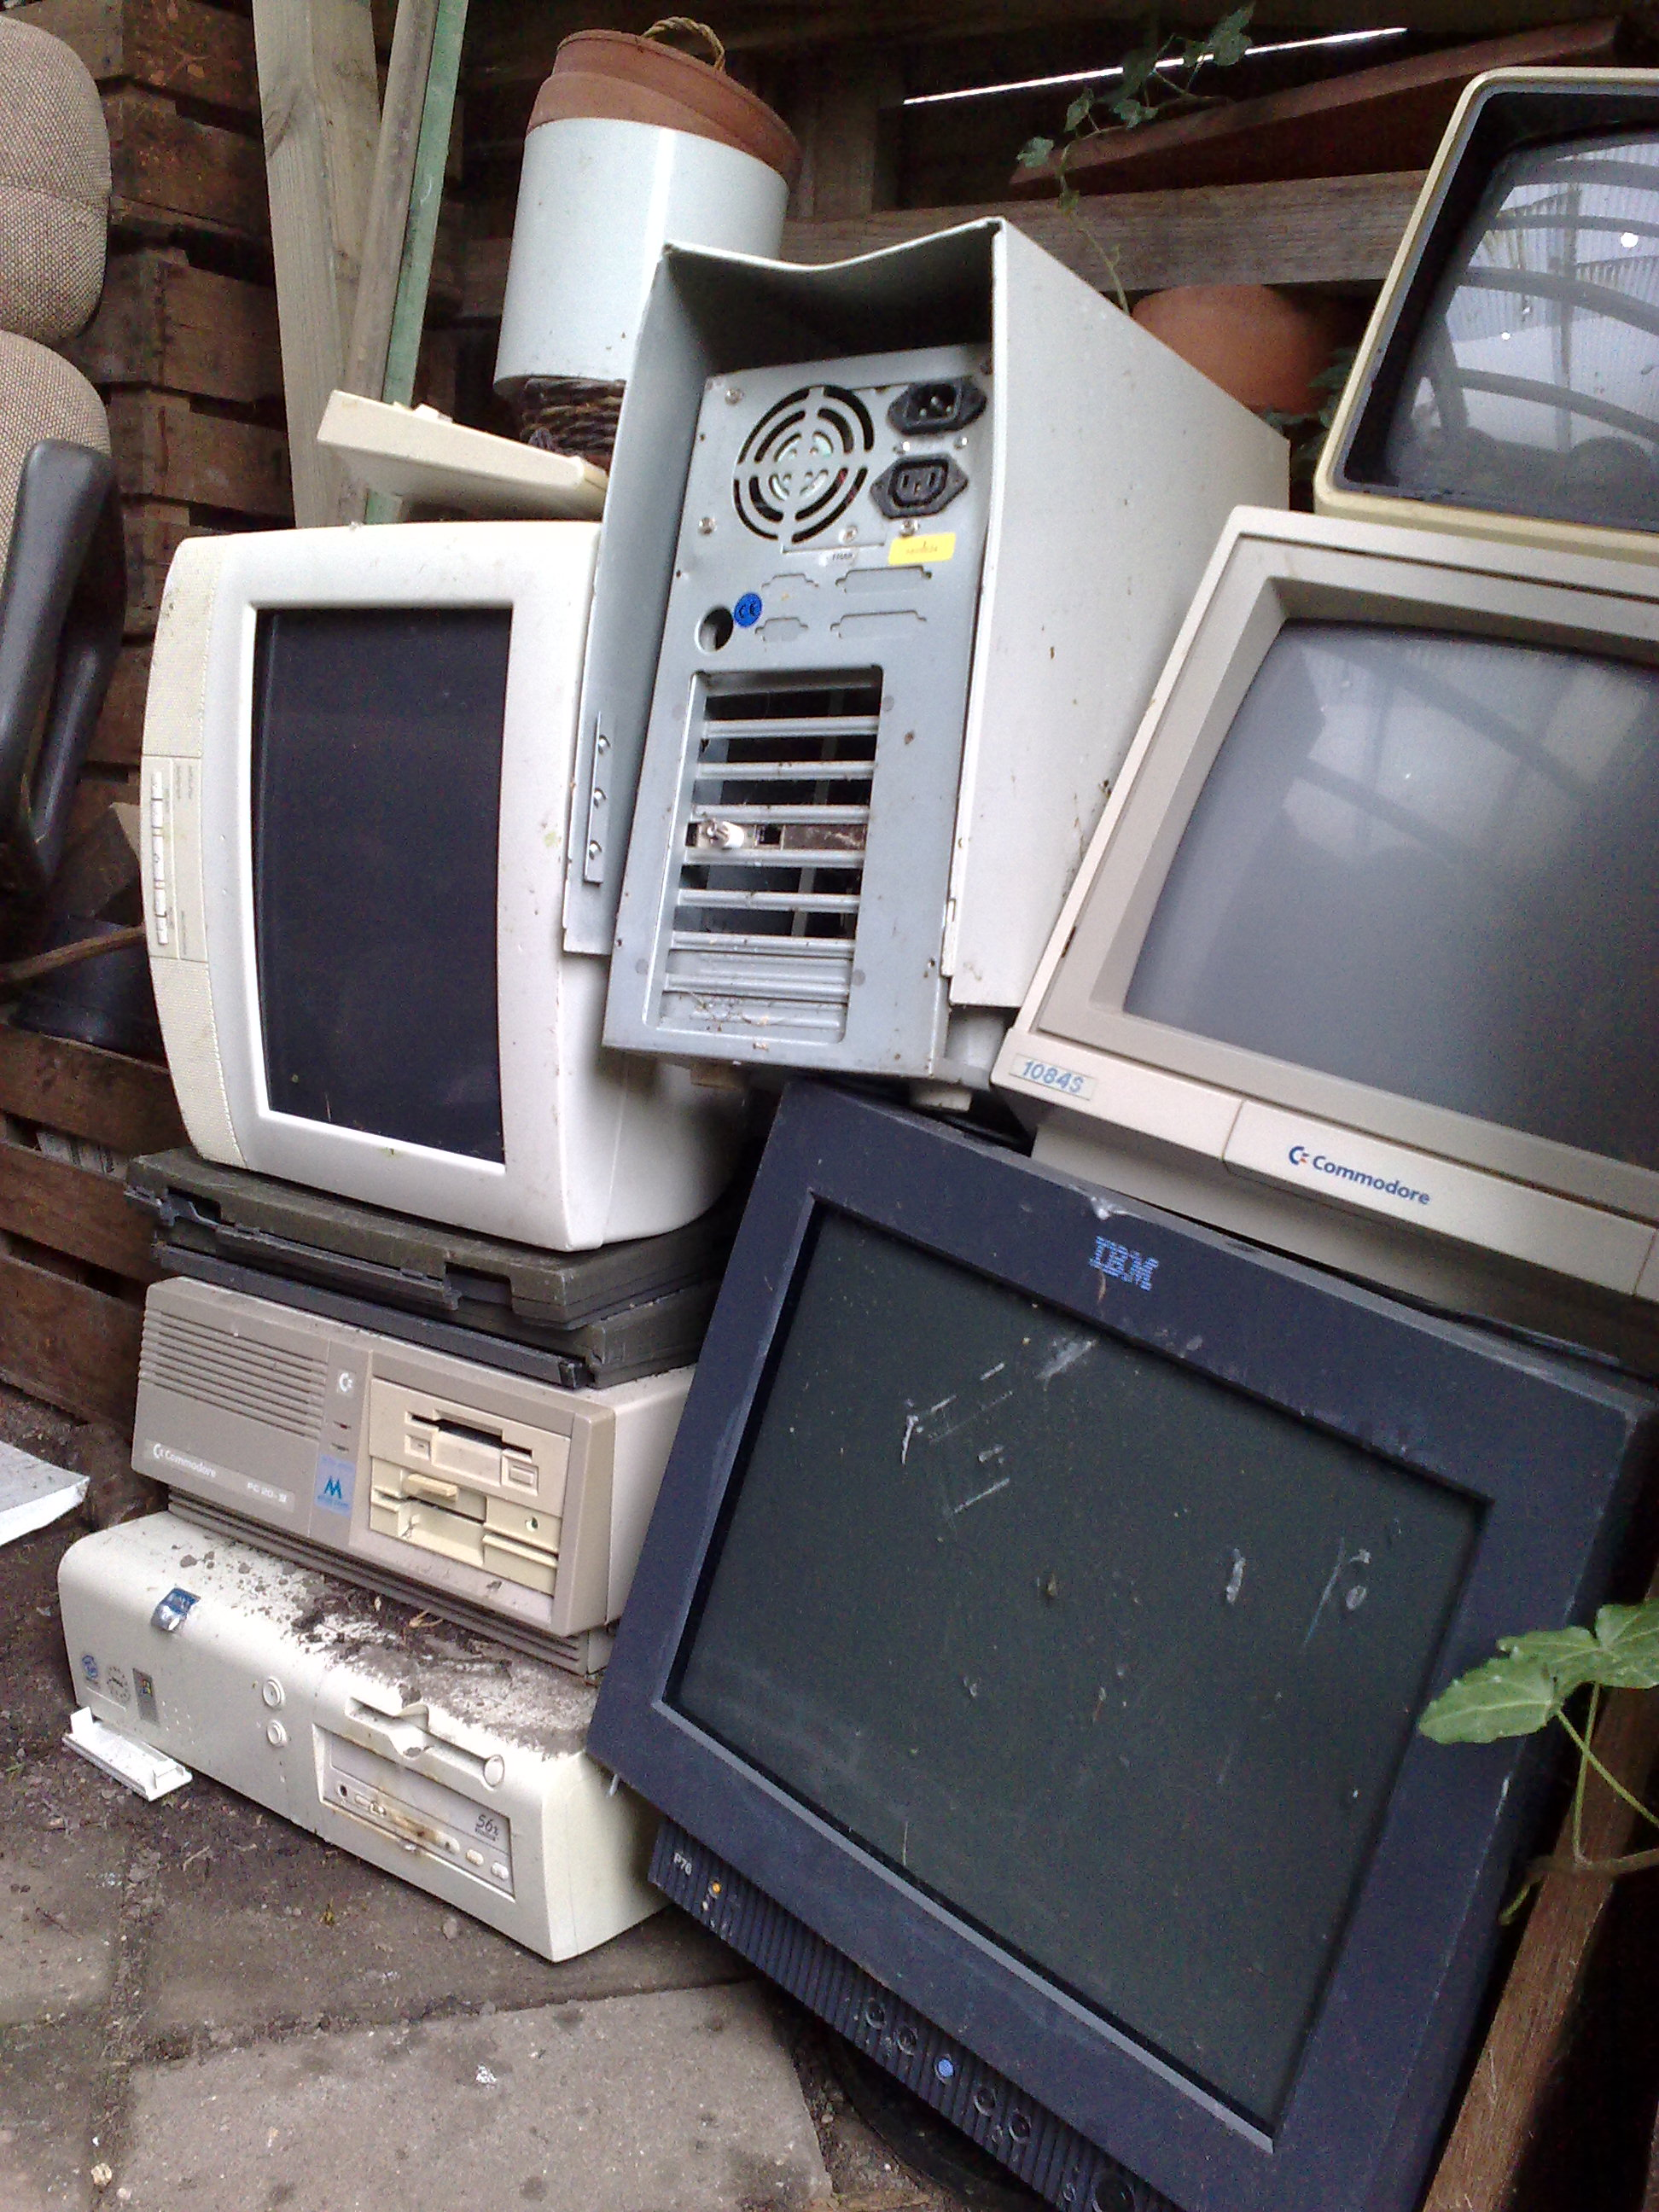 Don't let your e-waste pile up. Dispose of it properly this Saturday. Image via Wikimedia Commons.